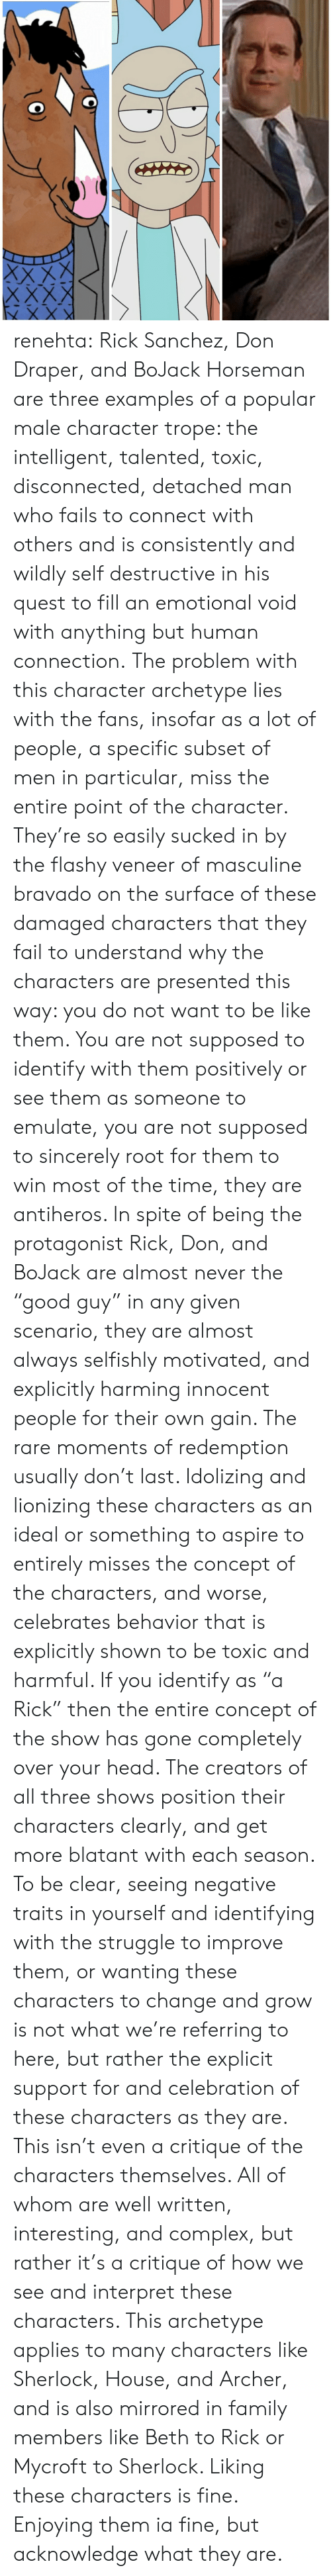 """Detached: renehta:  Rick Sanchez, Don Draper,  and BoJack Horseman are three examples of a popular male character trope: the intelligent, talented, toxic, disconnected, detached man who fails to connect with others and is consistently and wildly self destructive in his quest to fill an emotional void with anything but human connection.  The problem with this character archetype lies with the fans, insofar as a lot of people, a specific subset of men in particular, miss the entire point of the character.   They're so easily sucked in by the flashy veneer of masculine bravado on the surface of these damaged characters that they fail to understand why the characters are presented this way: you do not want to be like them.  You are not supposed to identify with them positively or see them as someone to emulate, you are not supposed to sincerely root for them to win most of the time, they are antiheros.   In spite of being the protagonist Rick, Don, and BoJack are almost never the """"good guy"""" in any given scenario, they are almost always selfishly motivated, and explicitly harming innocent people for their own gain. The rare moments of redemption usually don't last.   Idolizing and lionizing these characters as an ideal or something to aspire to entirely misses the concept of the characters, and worse, celebrates behavior that is explicitly shown to be toxic and harmful.    If you identify as """"a Rick"""" then the entire concept of the show has gone completely over your head. The creators of all three shows position their characters clearly, and get more blatant with each season.  To be clear, seeing negative traits in yourself and identifying with the struggle to improve them, or wanting these characters to change and grow is not what we're referring to here, but rather the explicit support for and celebration of these characters as they are.  This isn't even a critique of the characters themselves. All of whom are well written, interesting, and complex, but rather it's a cr"""